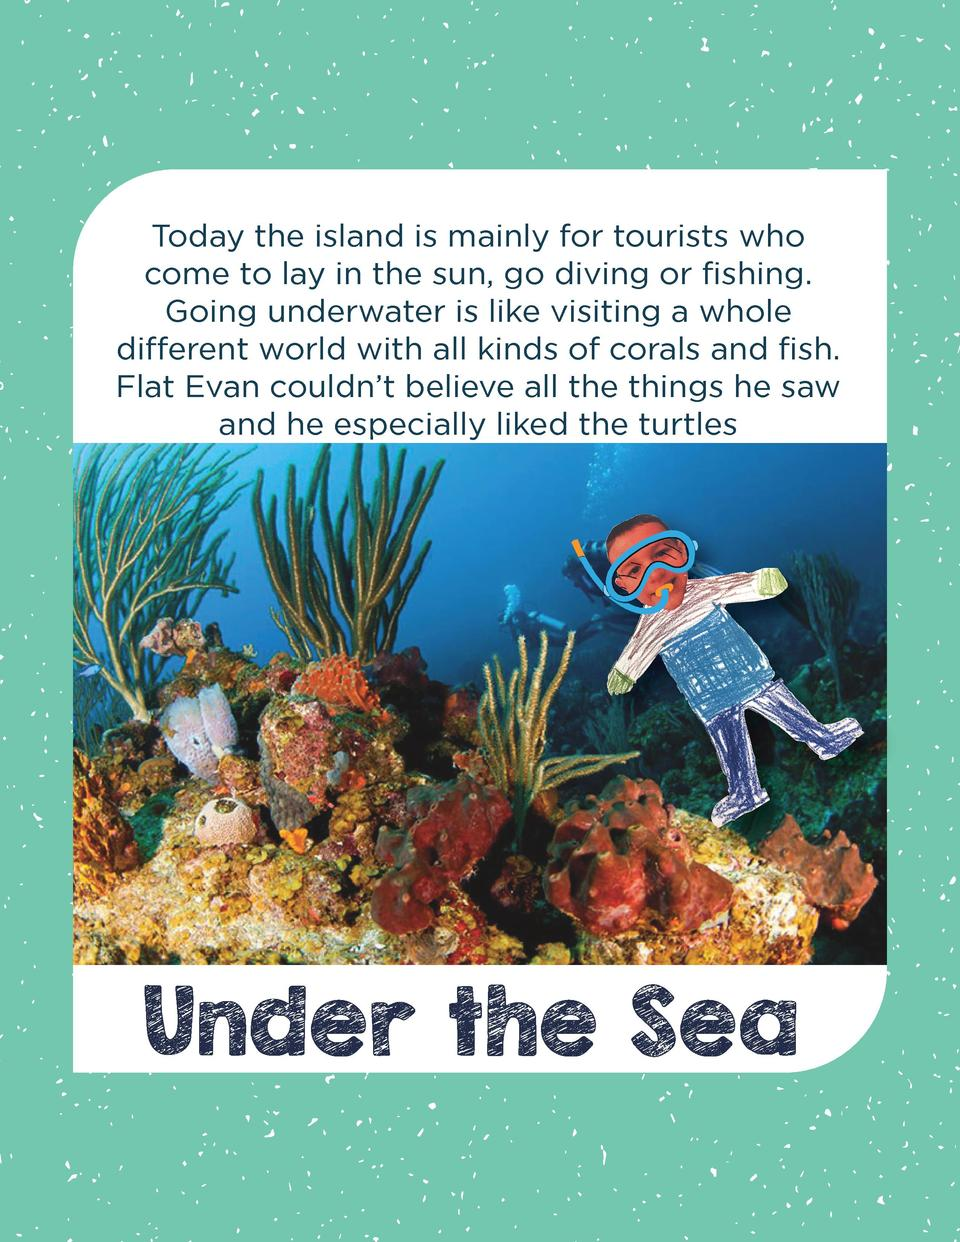 Today the island is mainly for tourists who come to lay in the sun, go diving or fishing. Going underwater is like visitin...